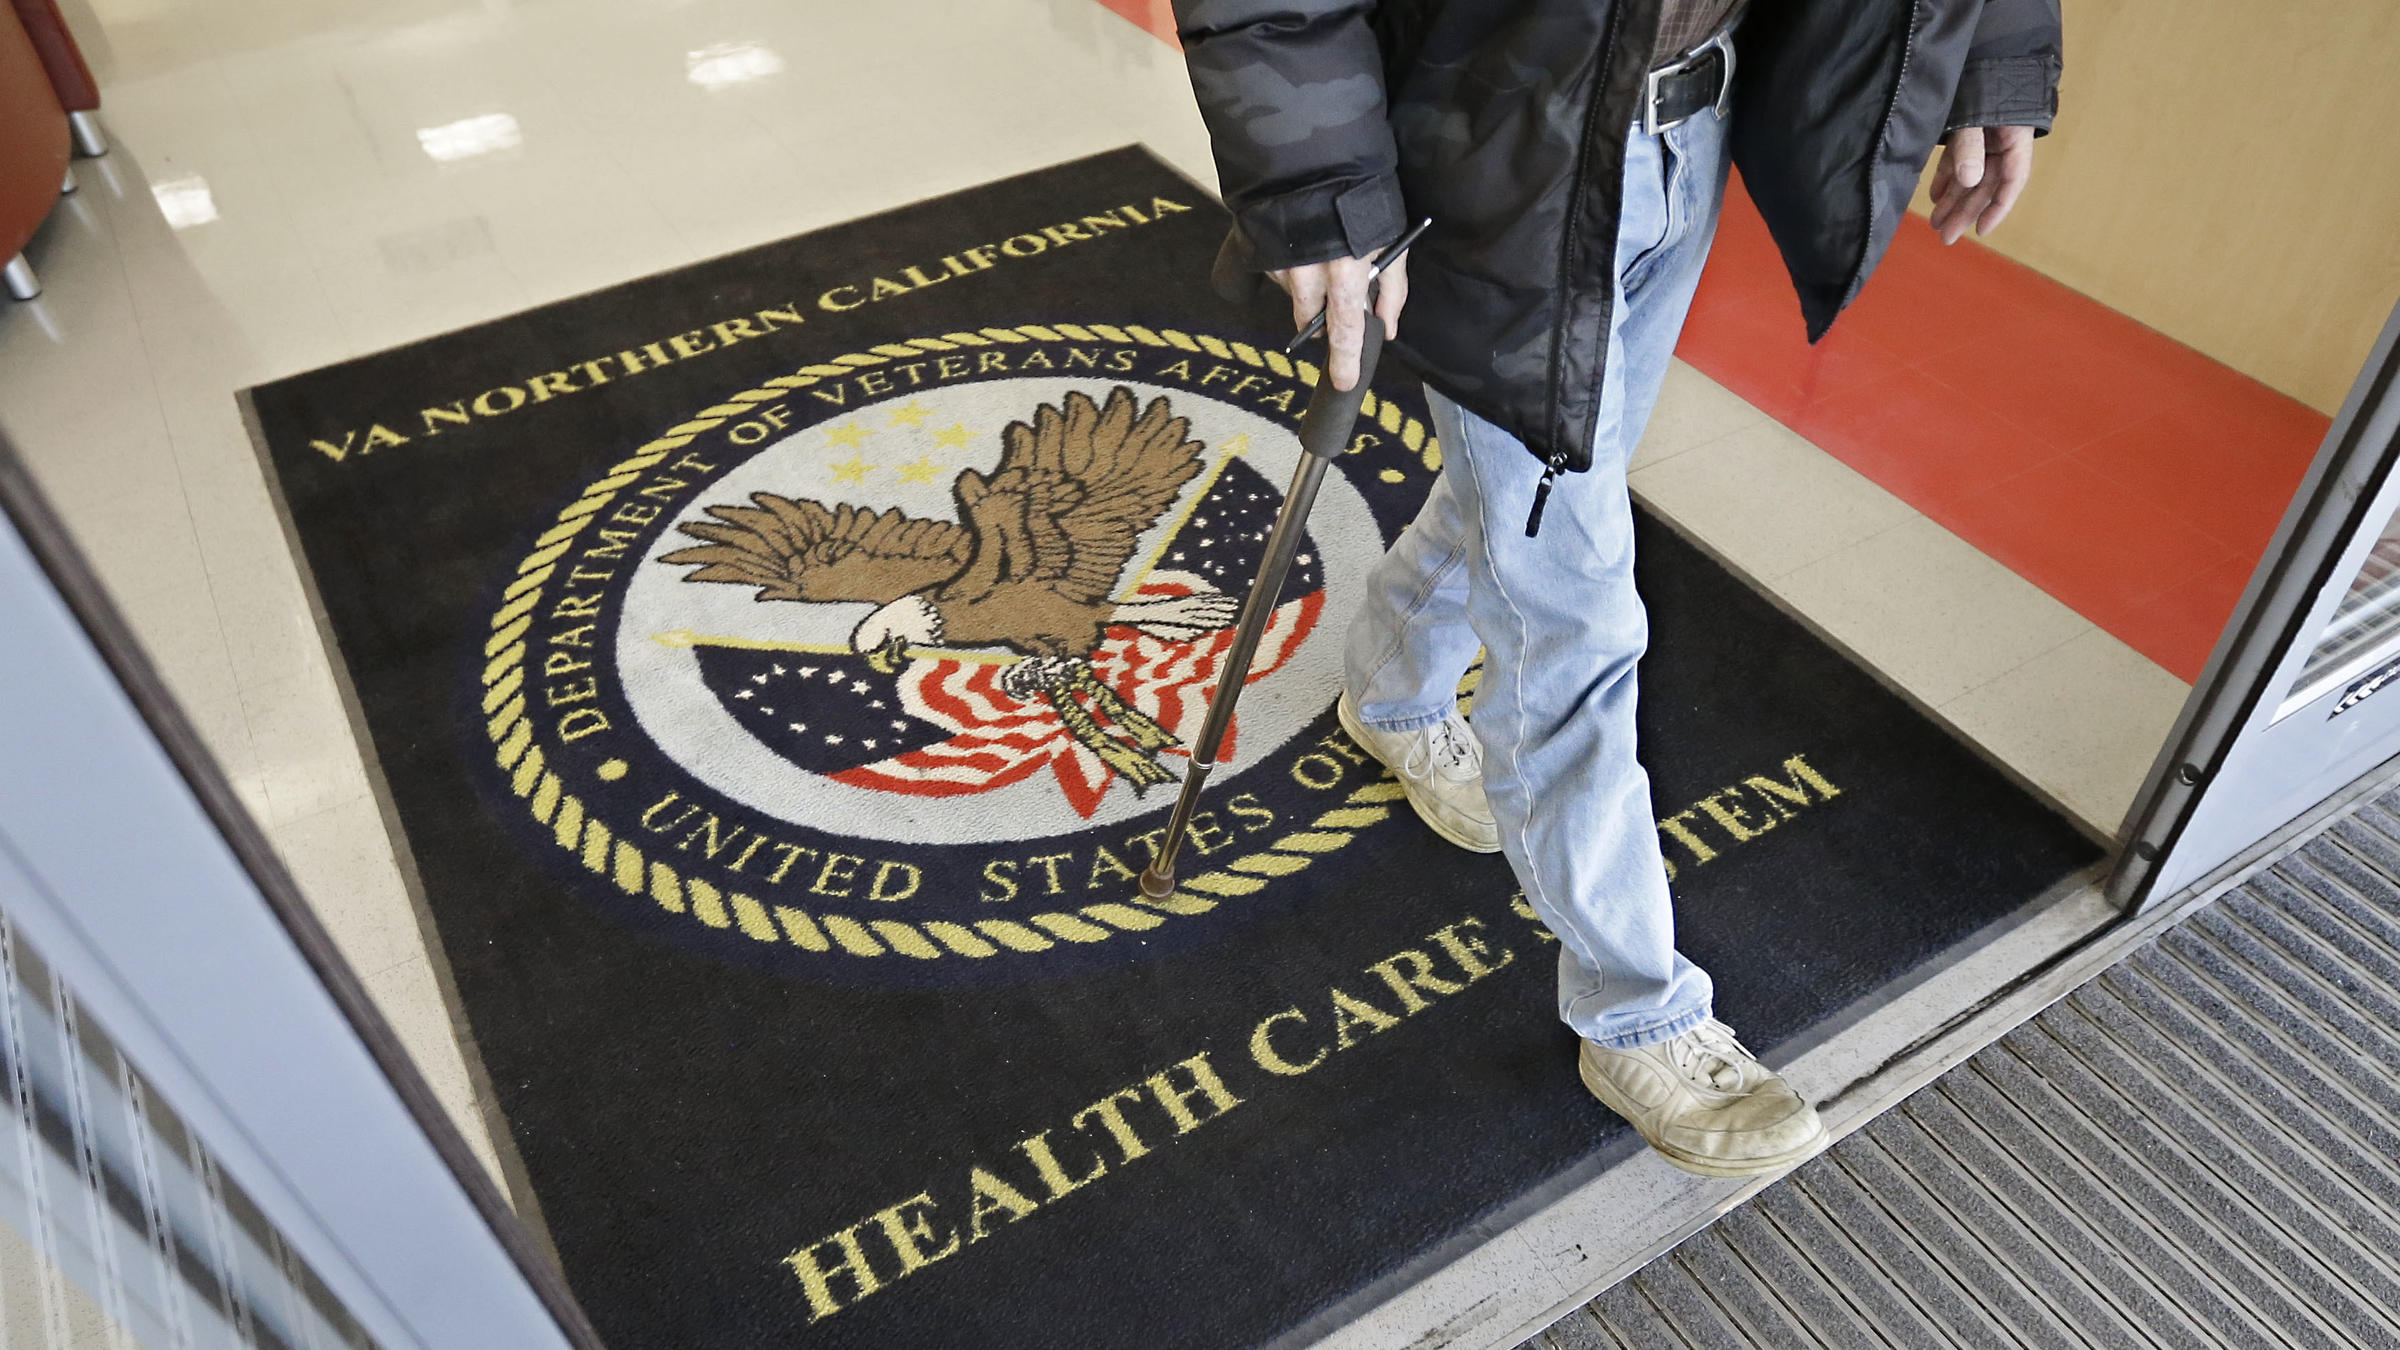 Congress passes long-sought VA accountability bill